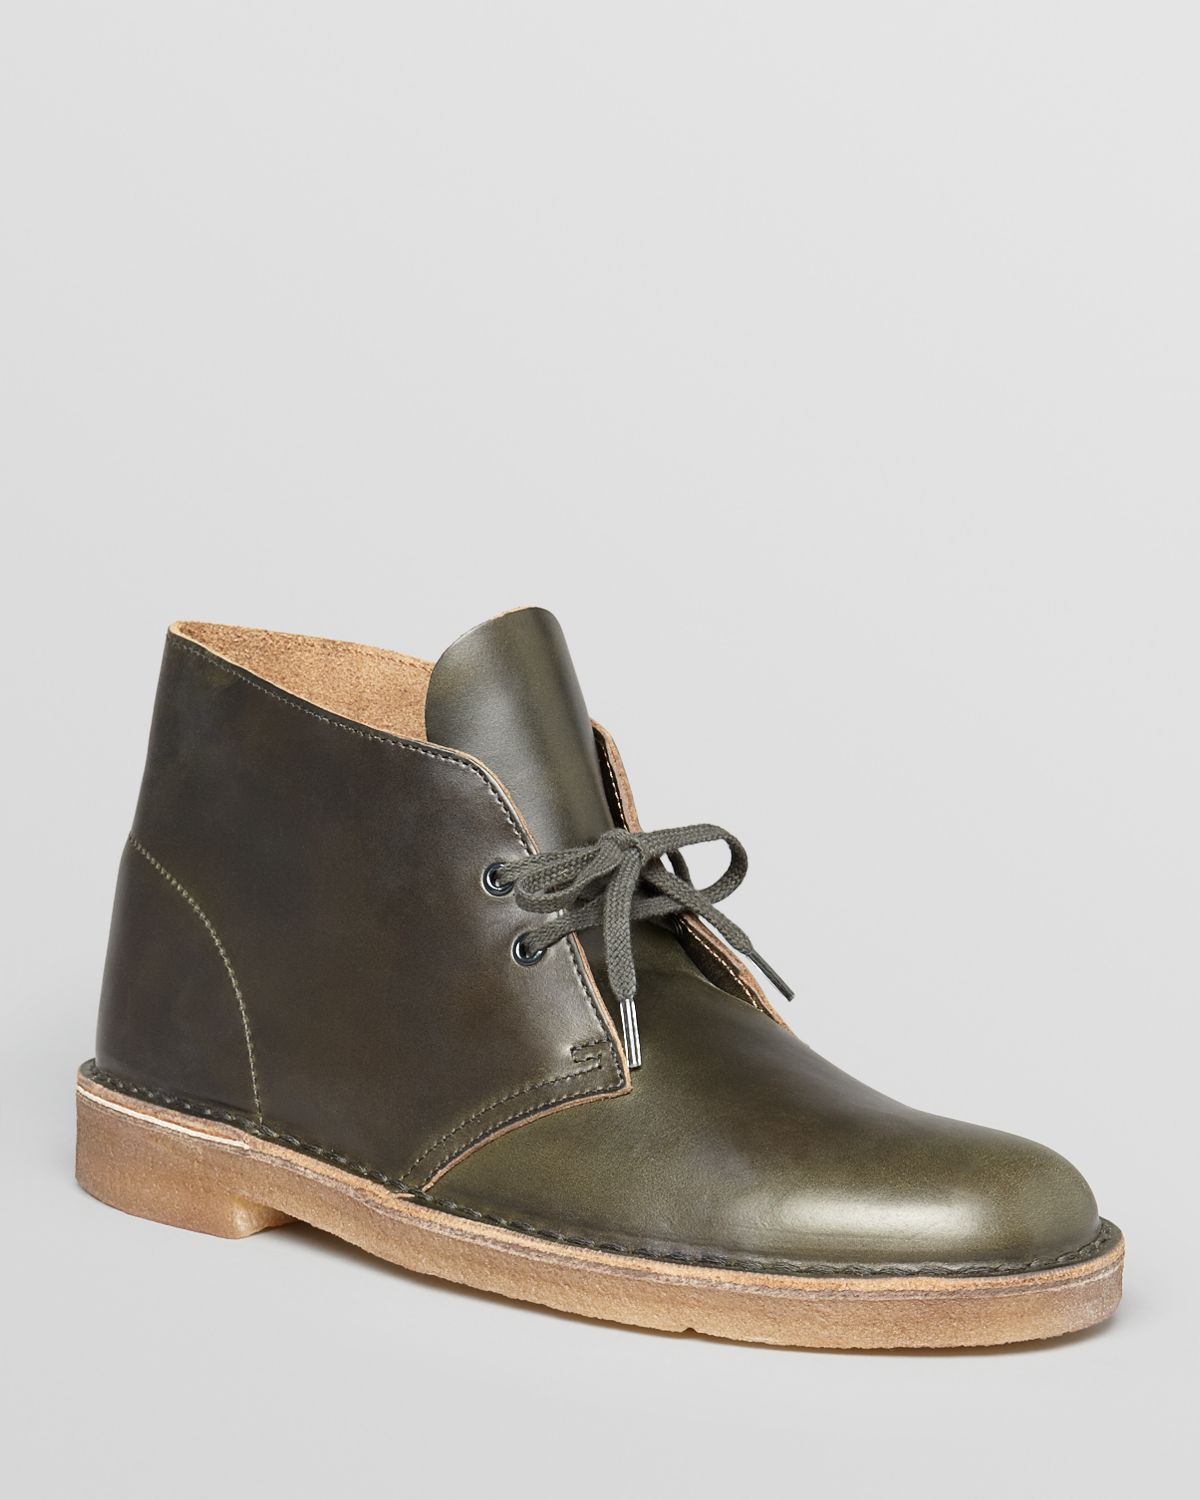 Clarks Leather Desert Boots in Green